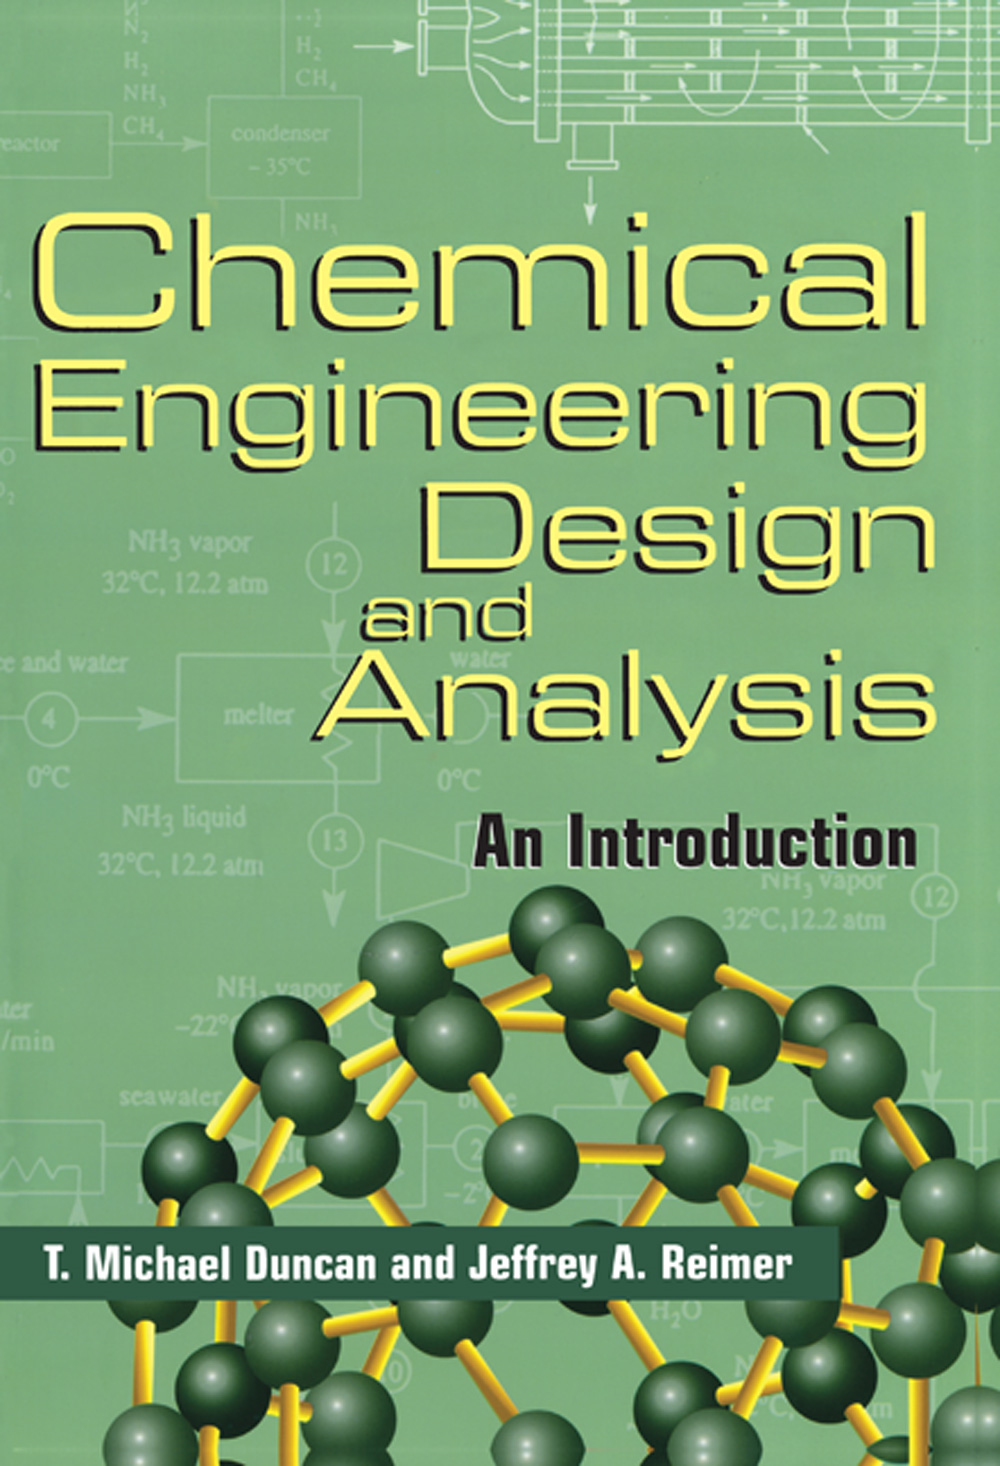 Chemical Engineering Design and Analysis An Introduction